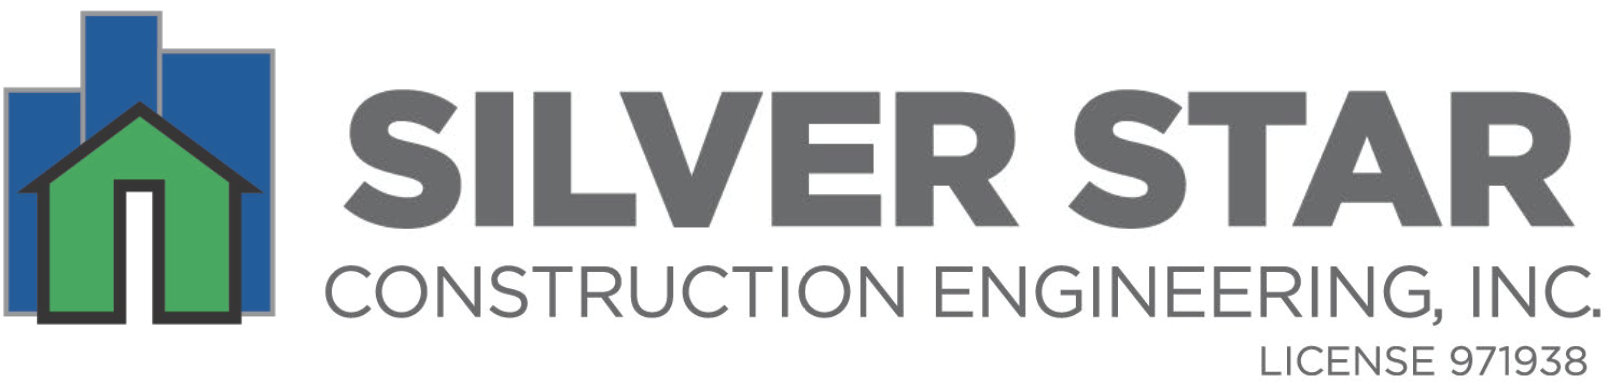 Silver Star Construction